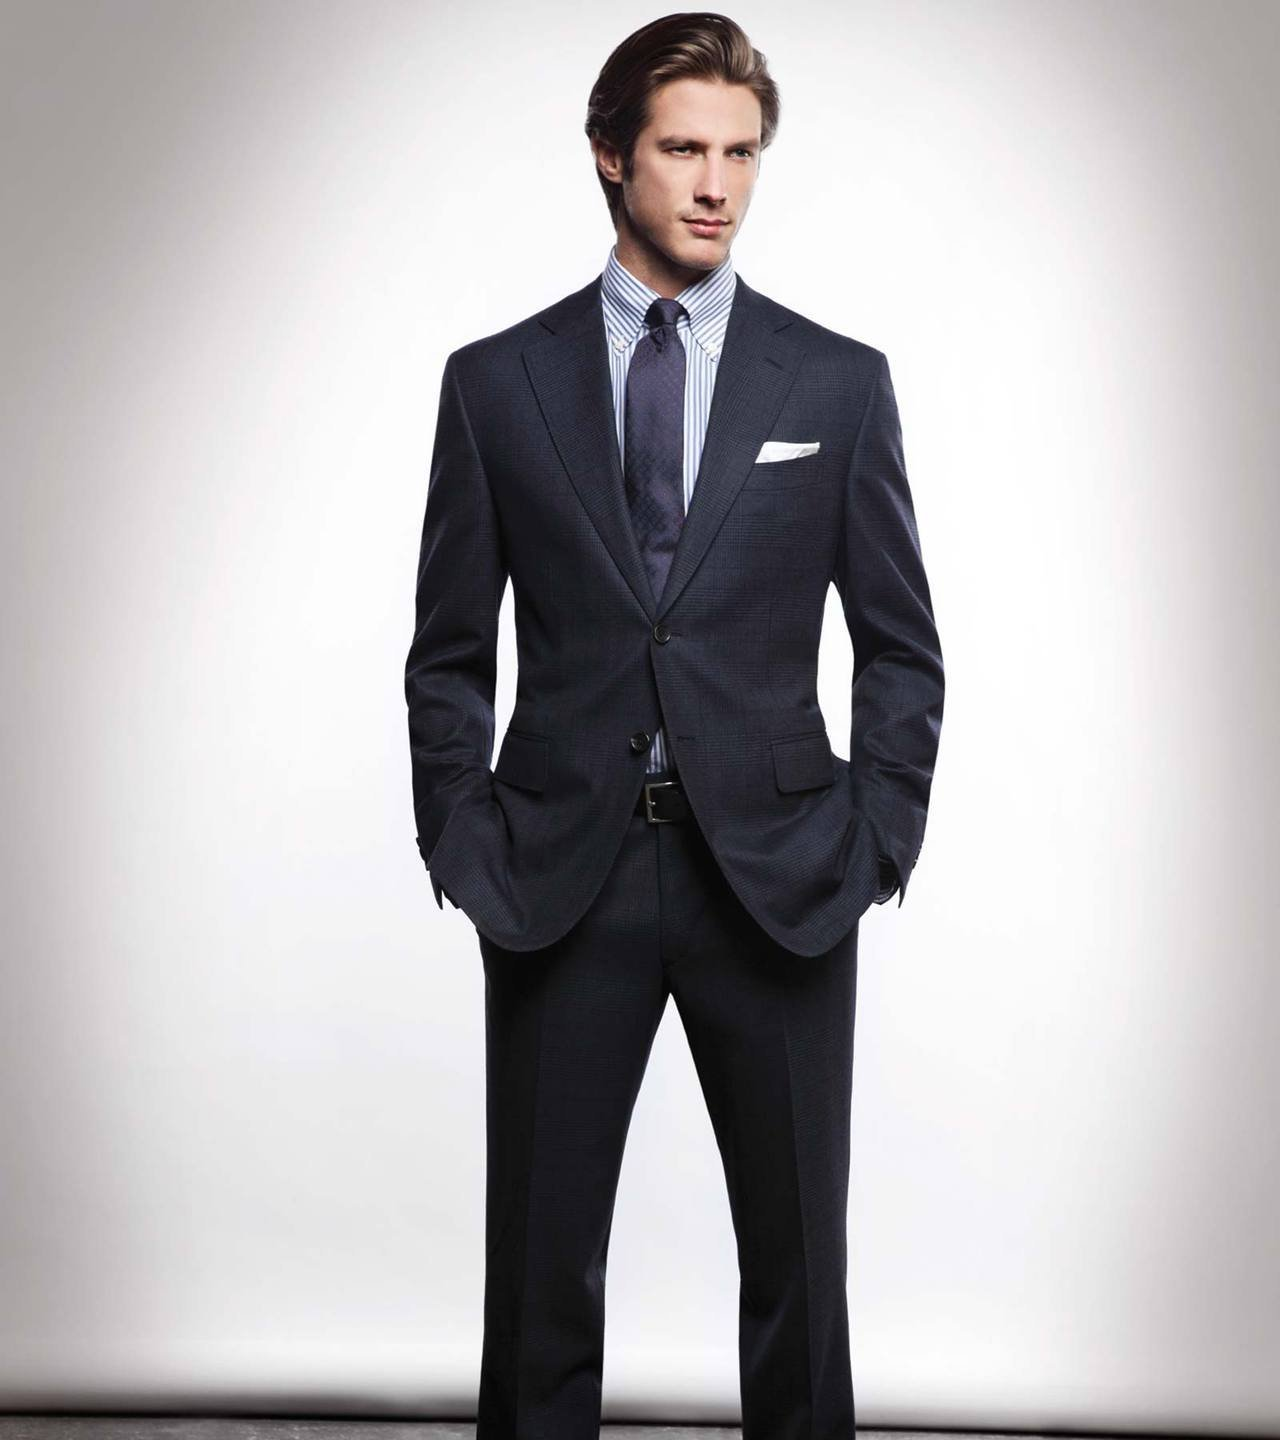 27 Rules About Wearing A Suit That Every Man Should Know